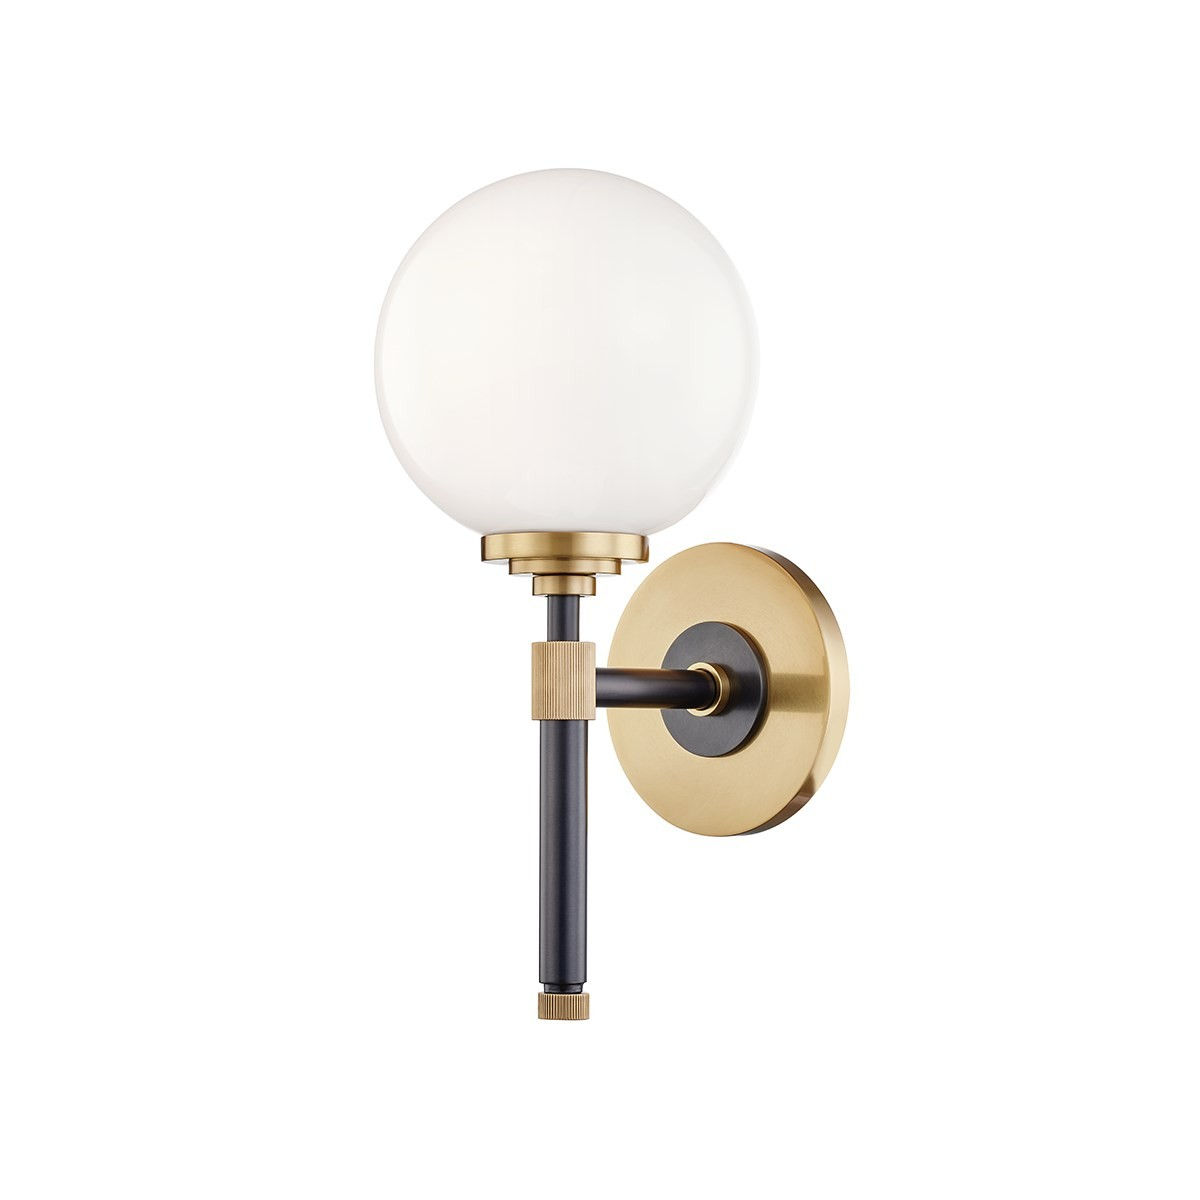 Hudson Valley | Bowery Bath and Vanity Wall Light | Aged Old Bronze